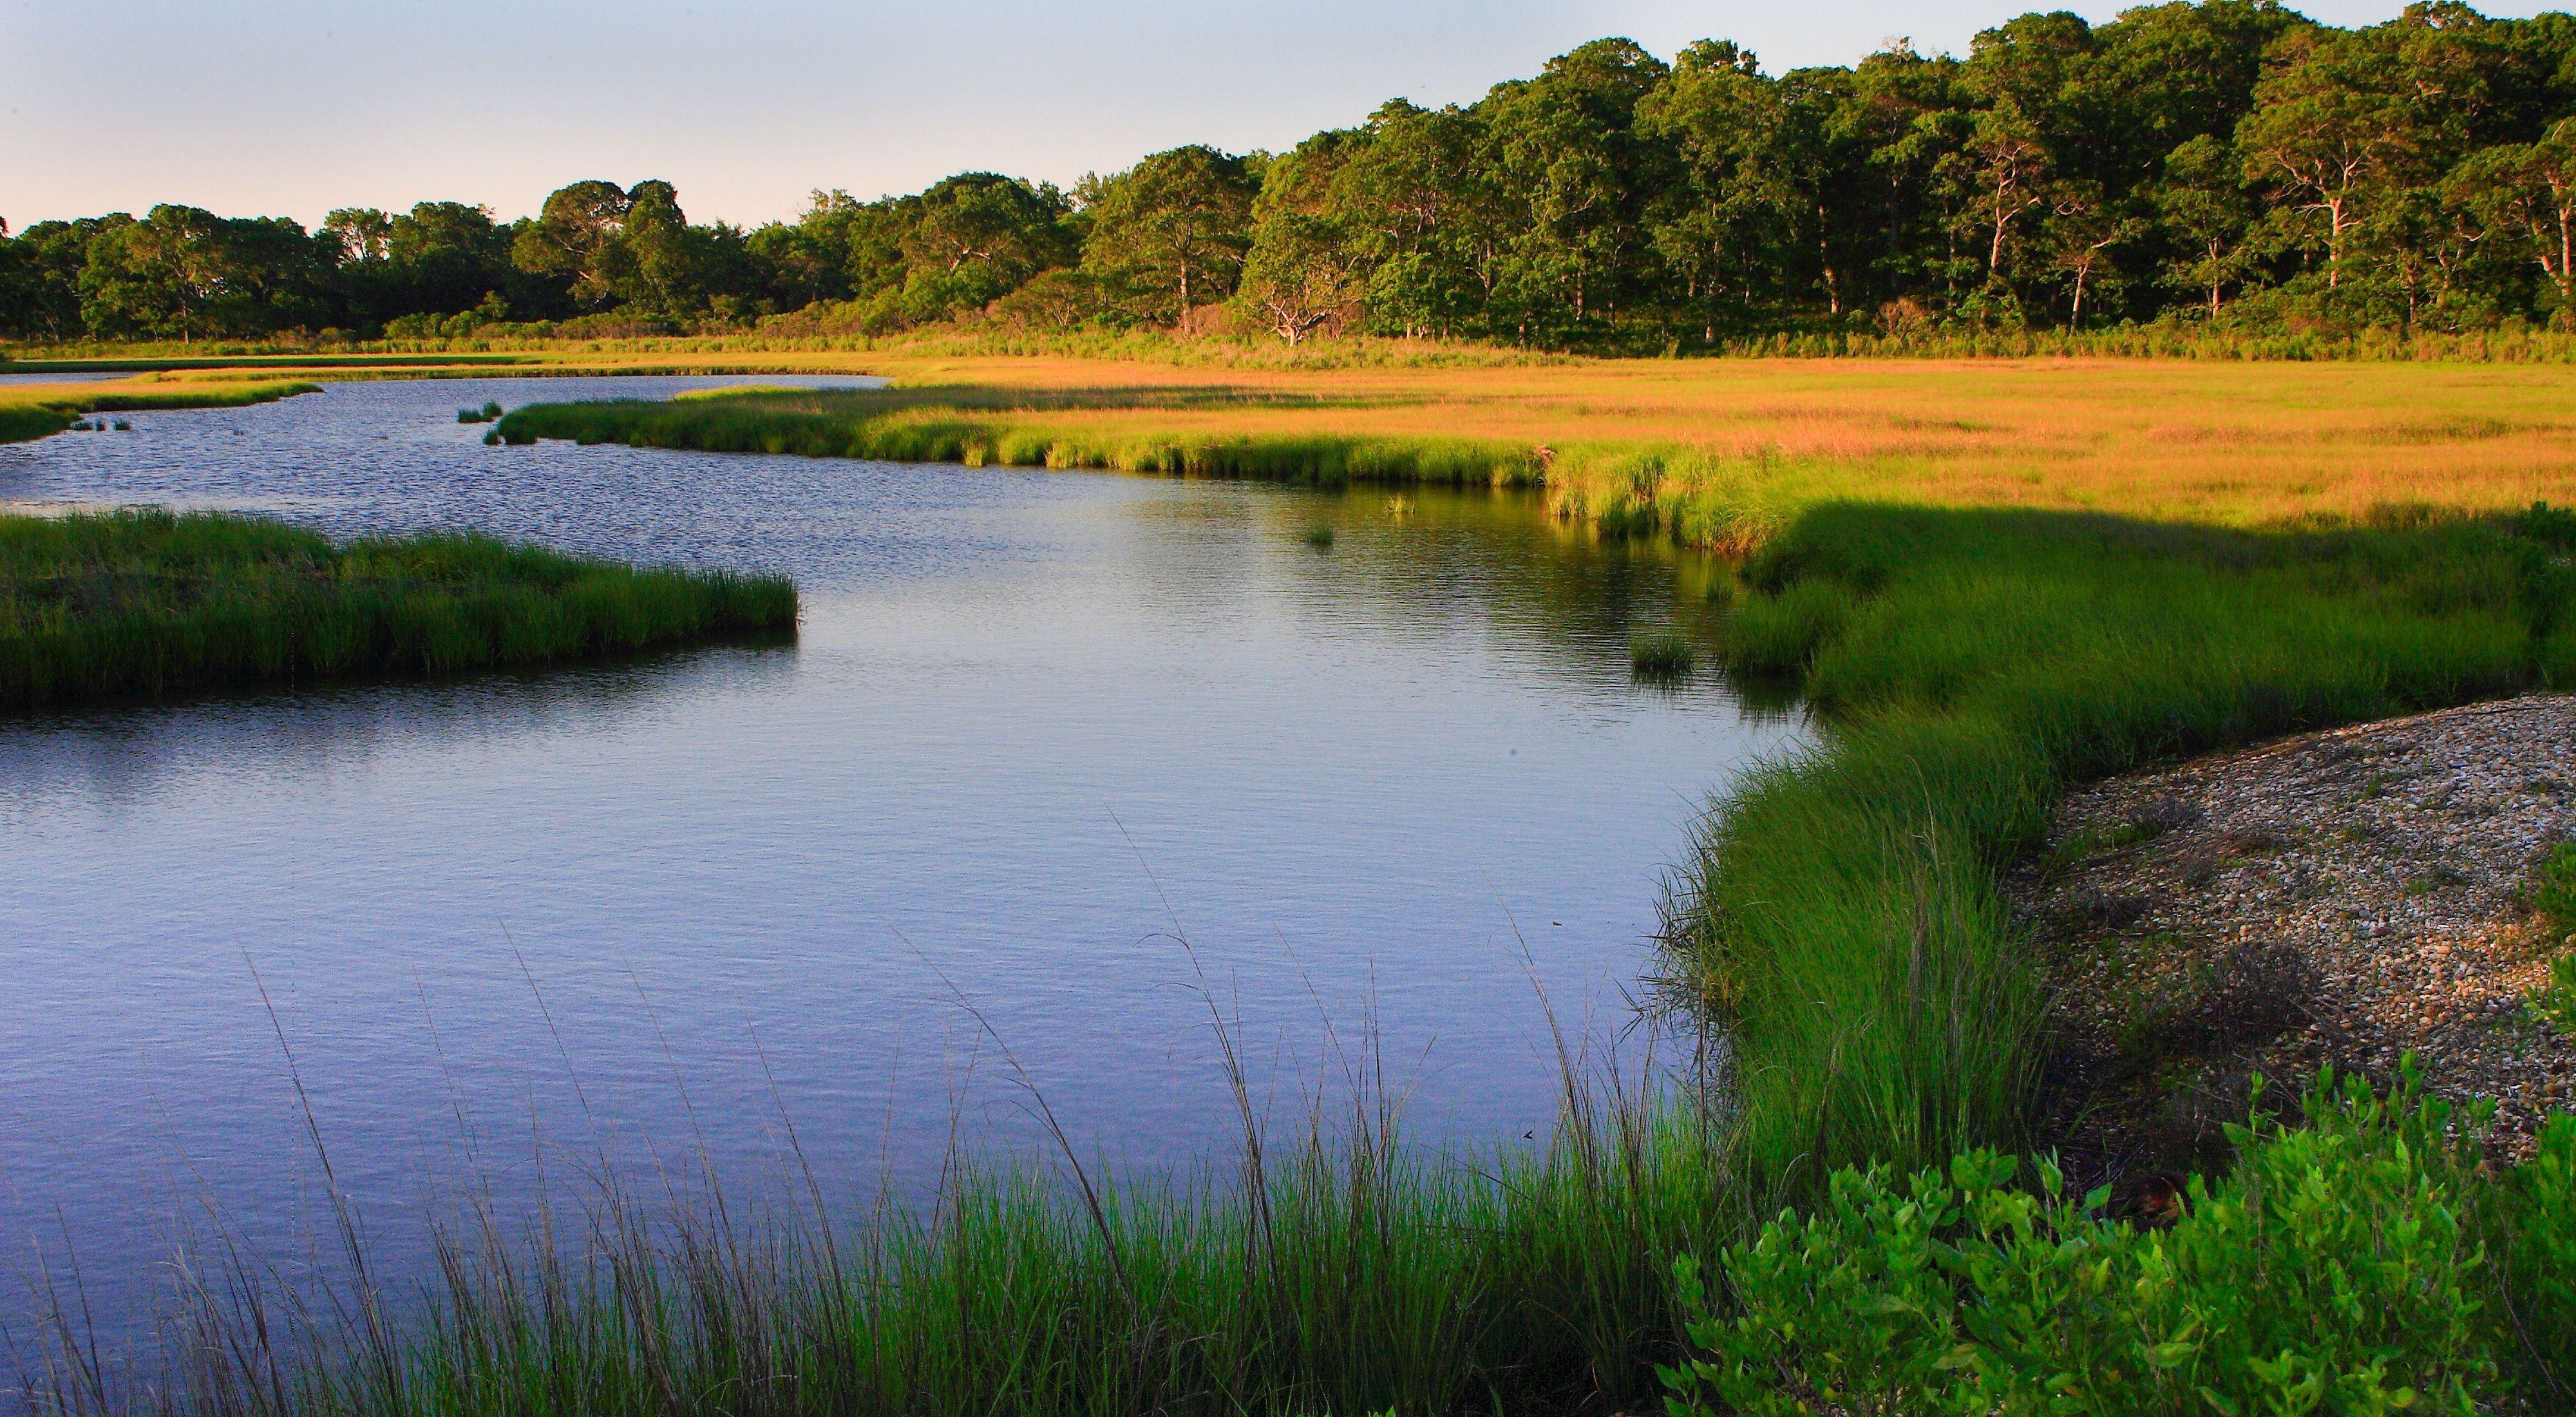 View of a winding river through a salt marsh lined by green and yellow shrubs.